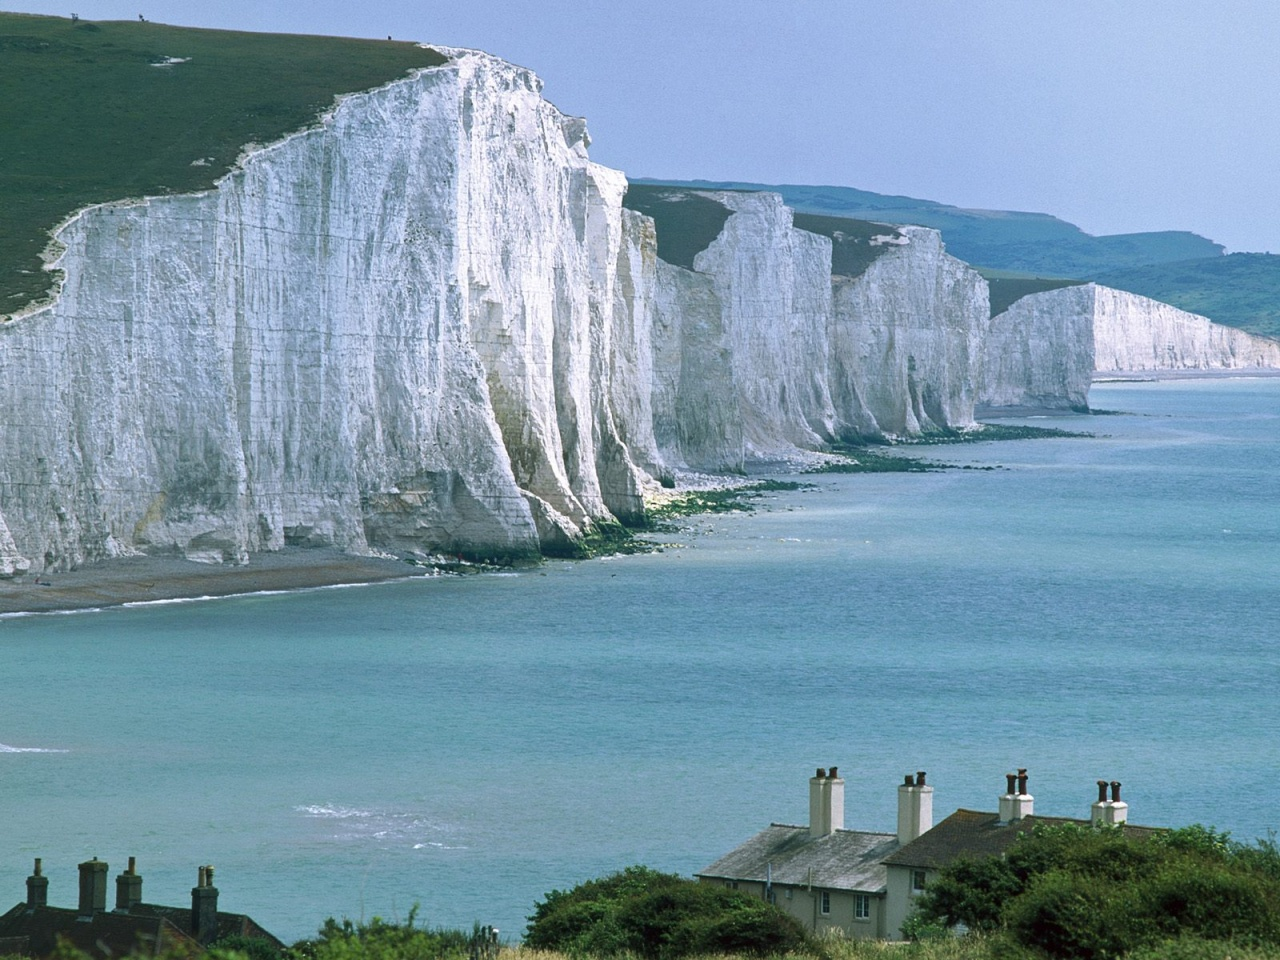 beachy-head-and-seven-sisters-cliffs-east-sussex-england